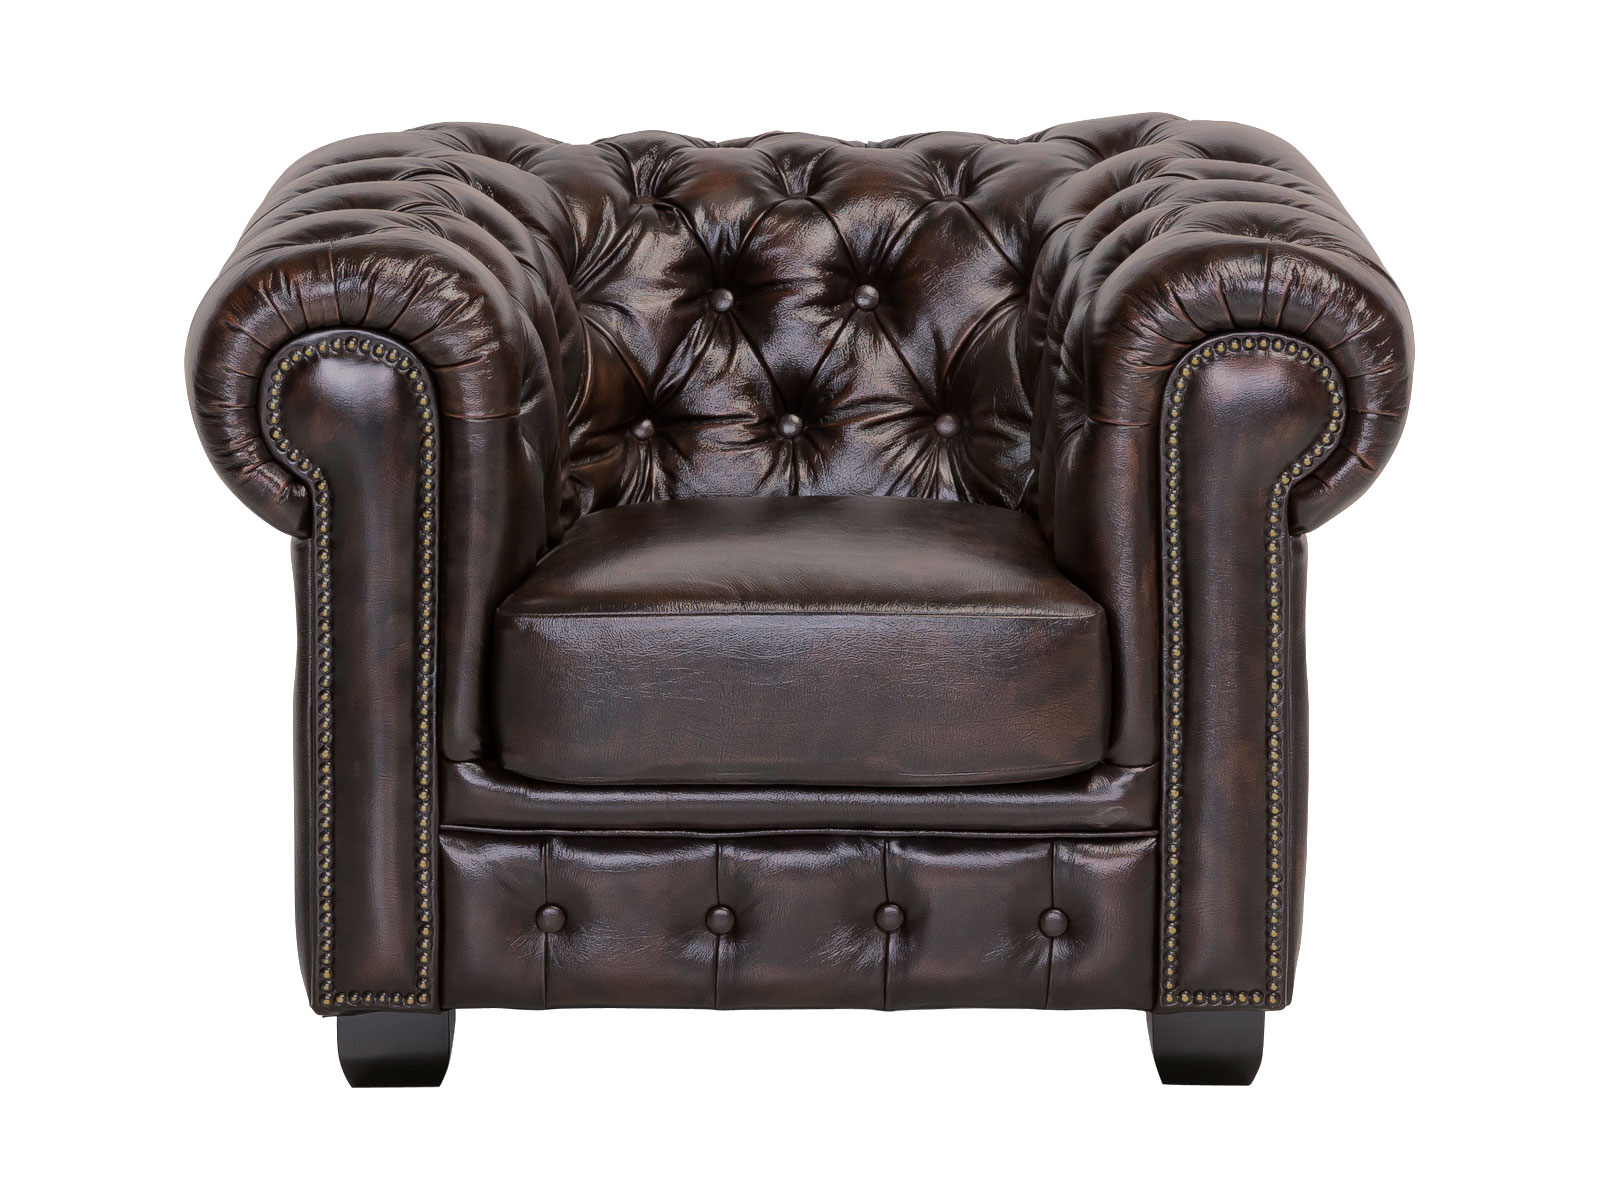 chesterfield sessel echtleder braun couch b rom bel polsterm bel neu ebay. Black Bedroom Furniture Sets. Home Design Ideas